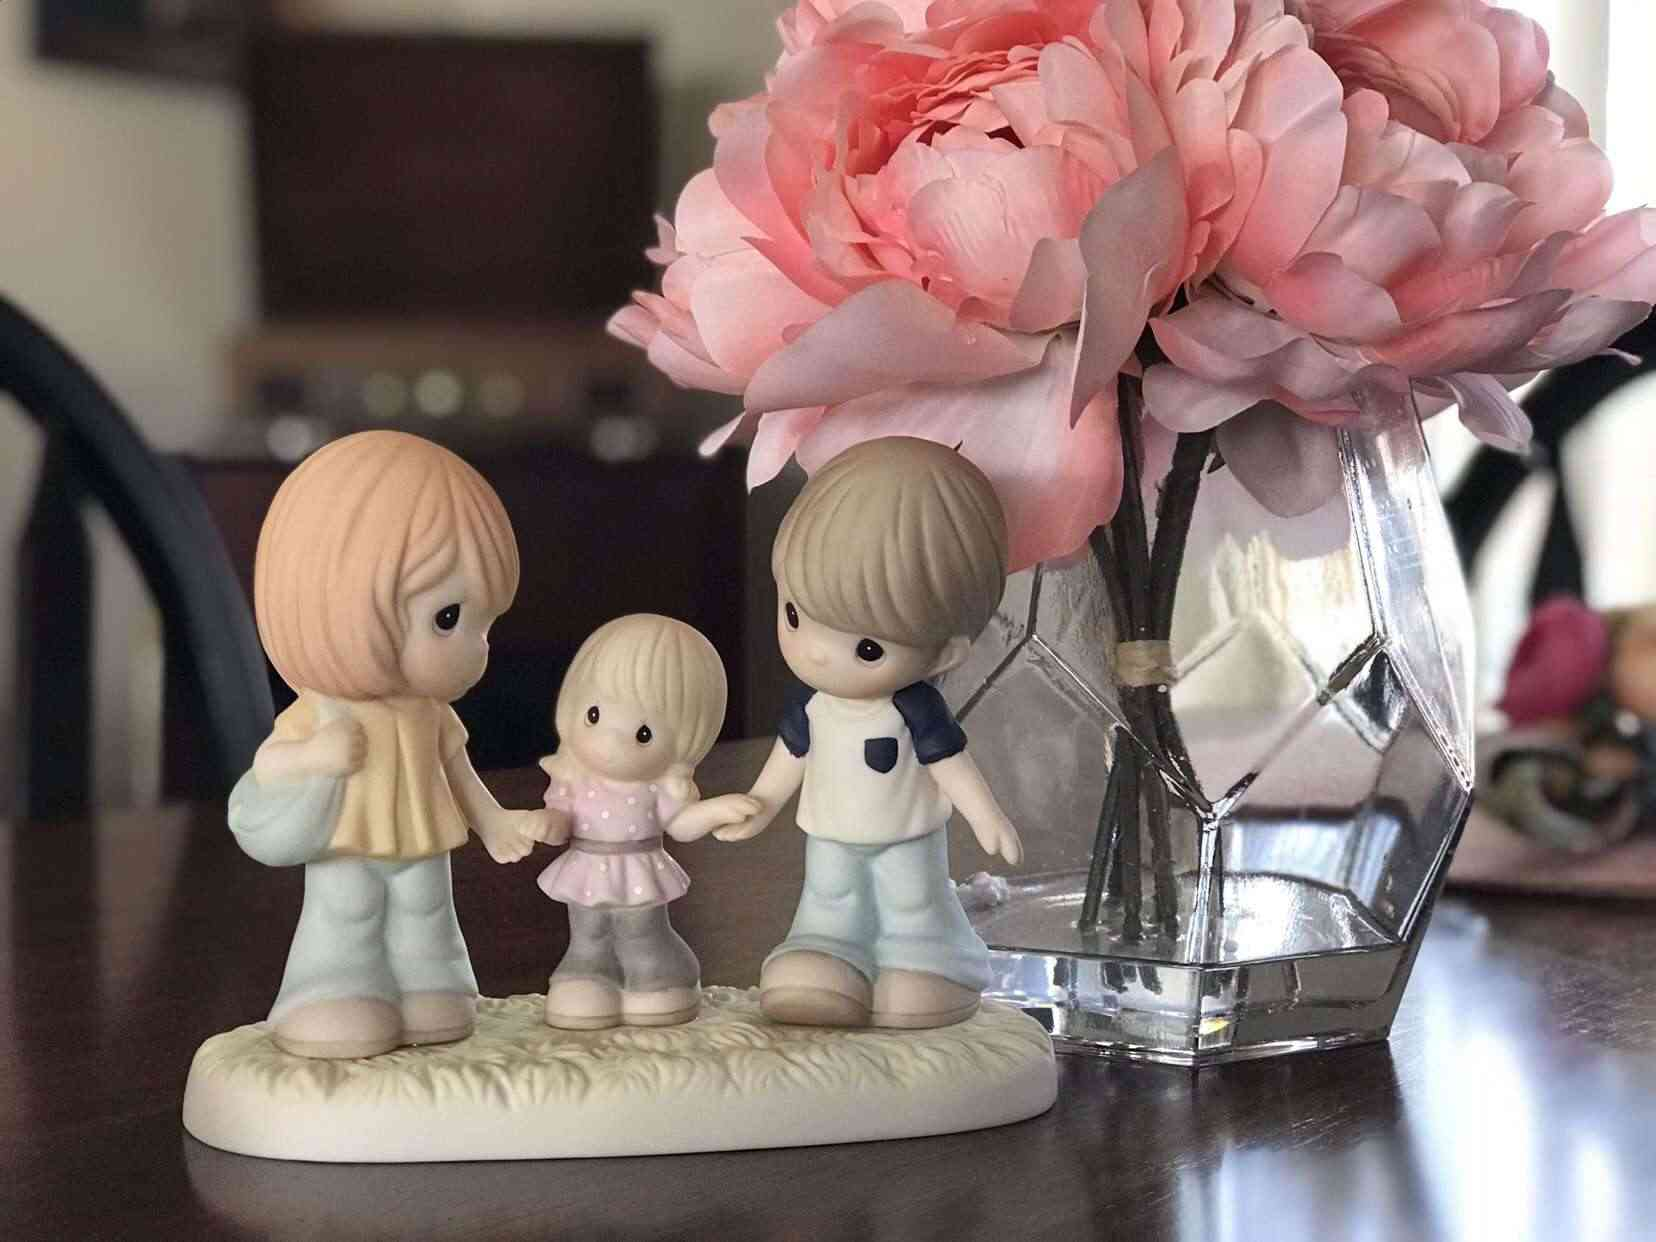 precious-moments-figurine-of-mother-father-daughter-for-mother's-day-teachworkoutlove.com